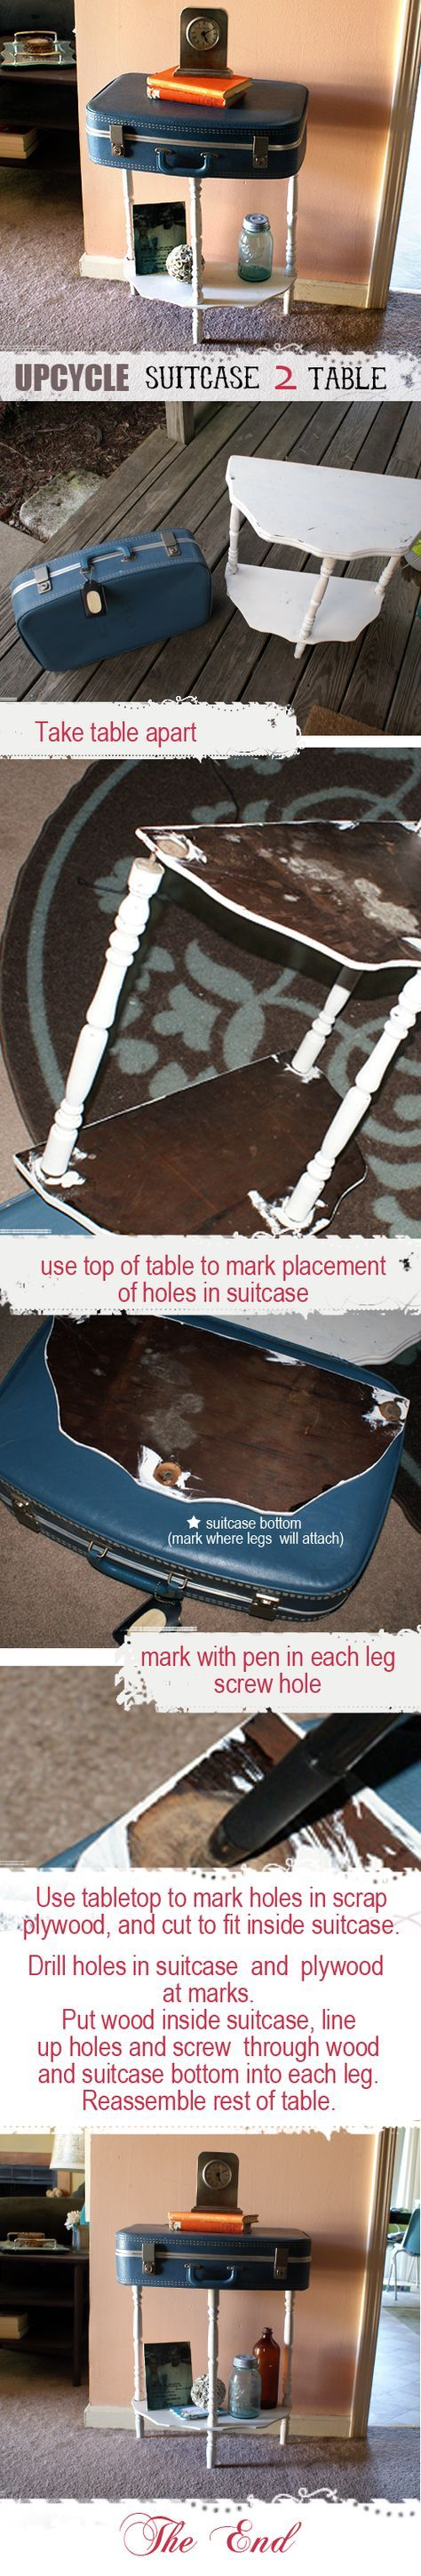 Easy and quick tutorial for turning old suitcase into table at savedbylovecreations.com #upcycle #DIY #crafts #repurpose